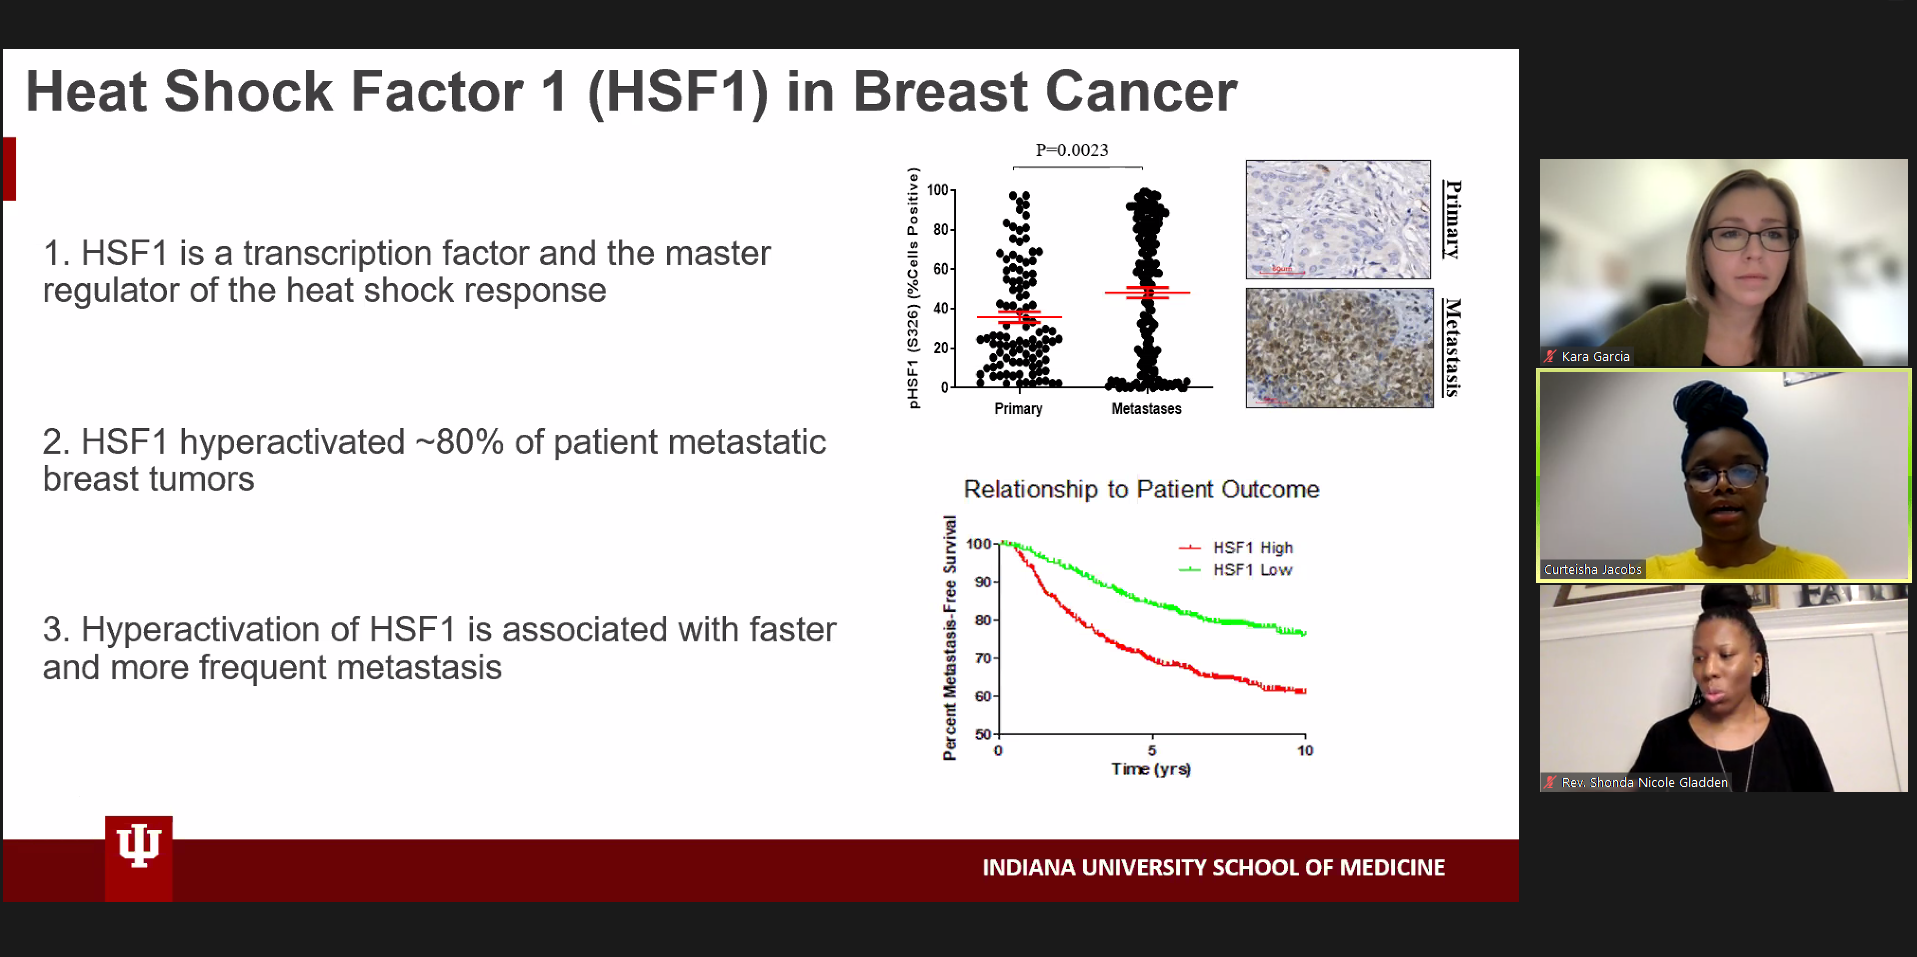 Curteisha Jacobs giving presentation about HSF1 regulation of Anti-Tumor Immune Response in Breast Cancer during Research Blitz